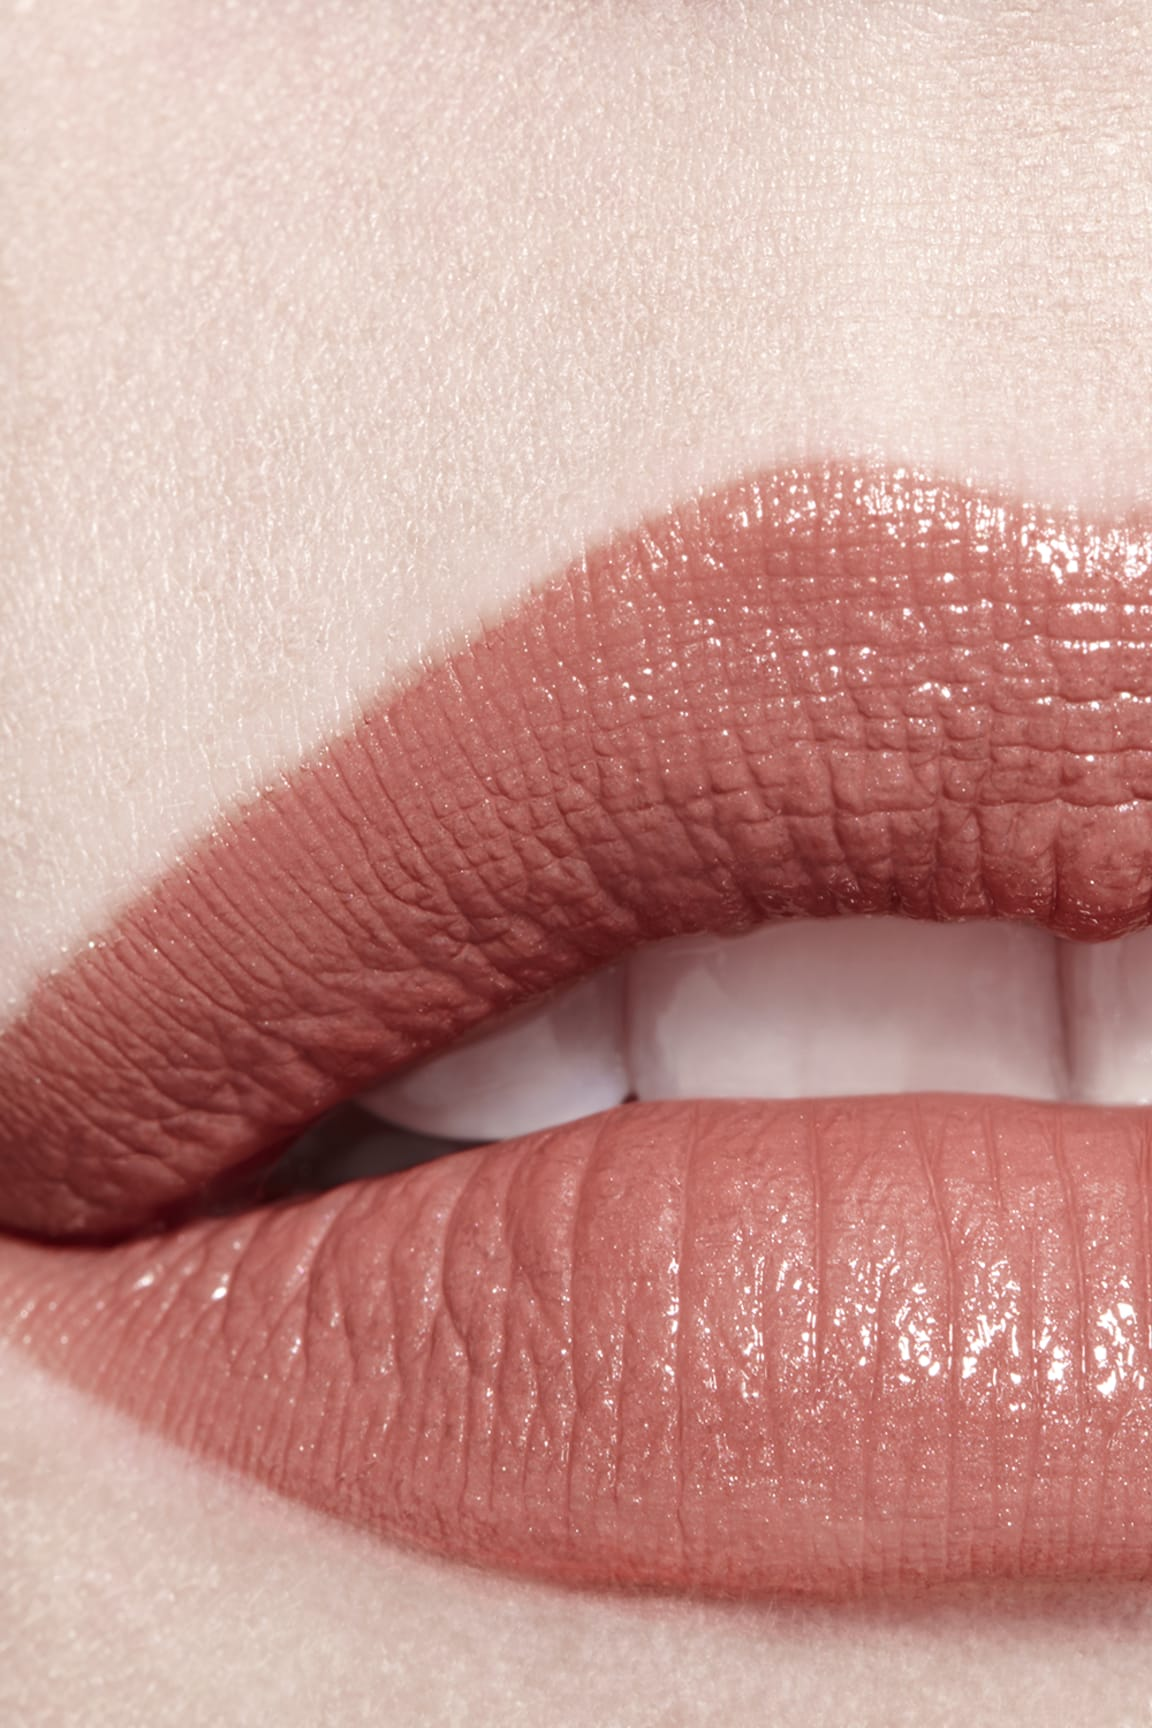 Application makeup visual 3 - ROUGE COCO 402 - ADRIENNE